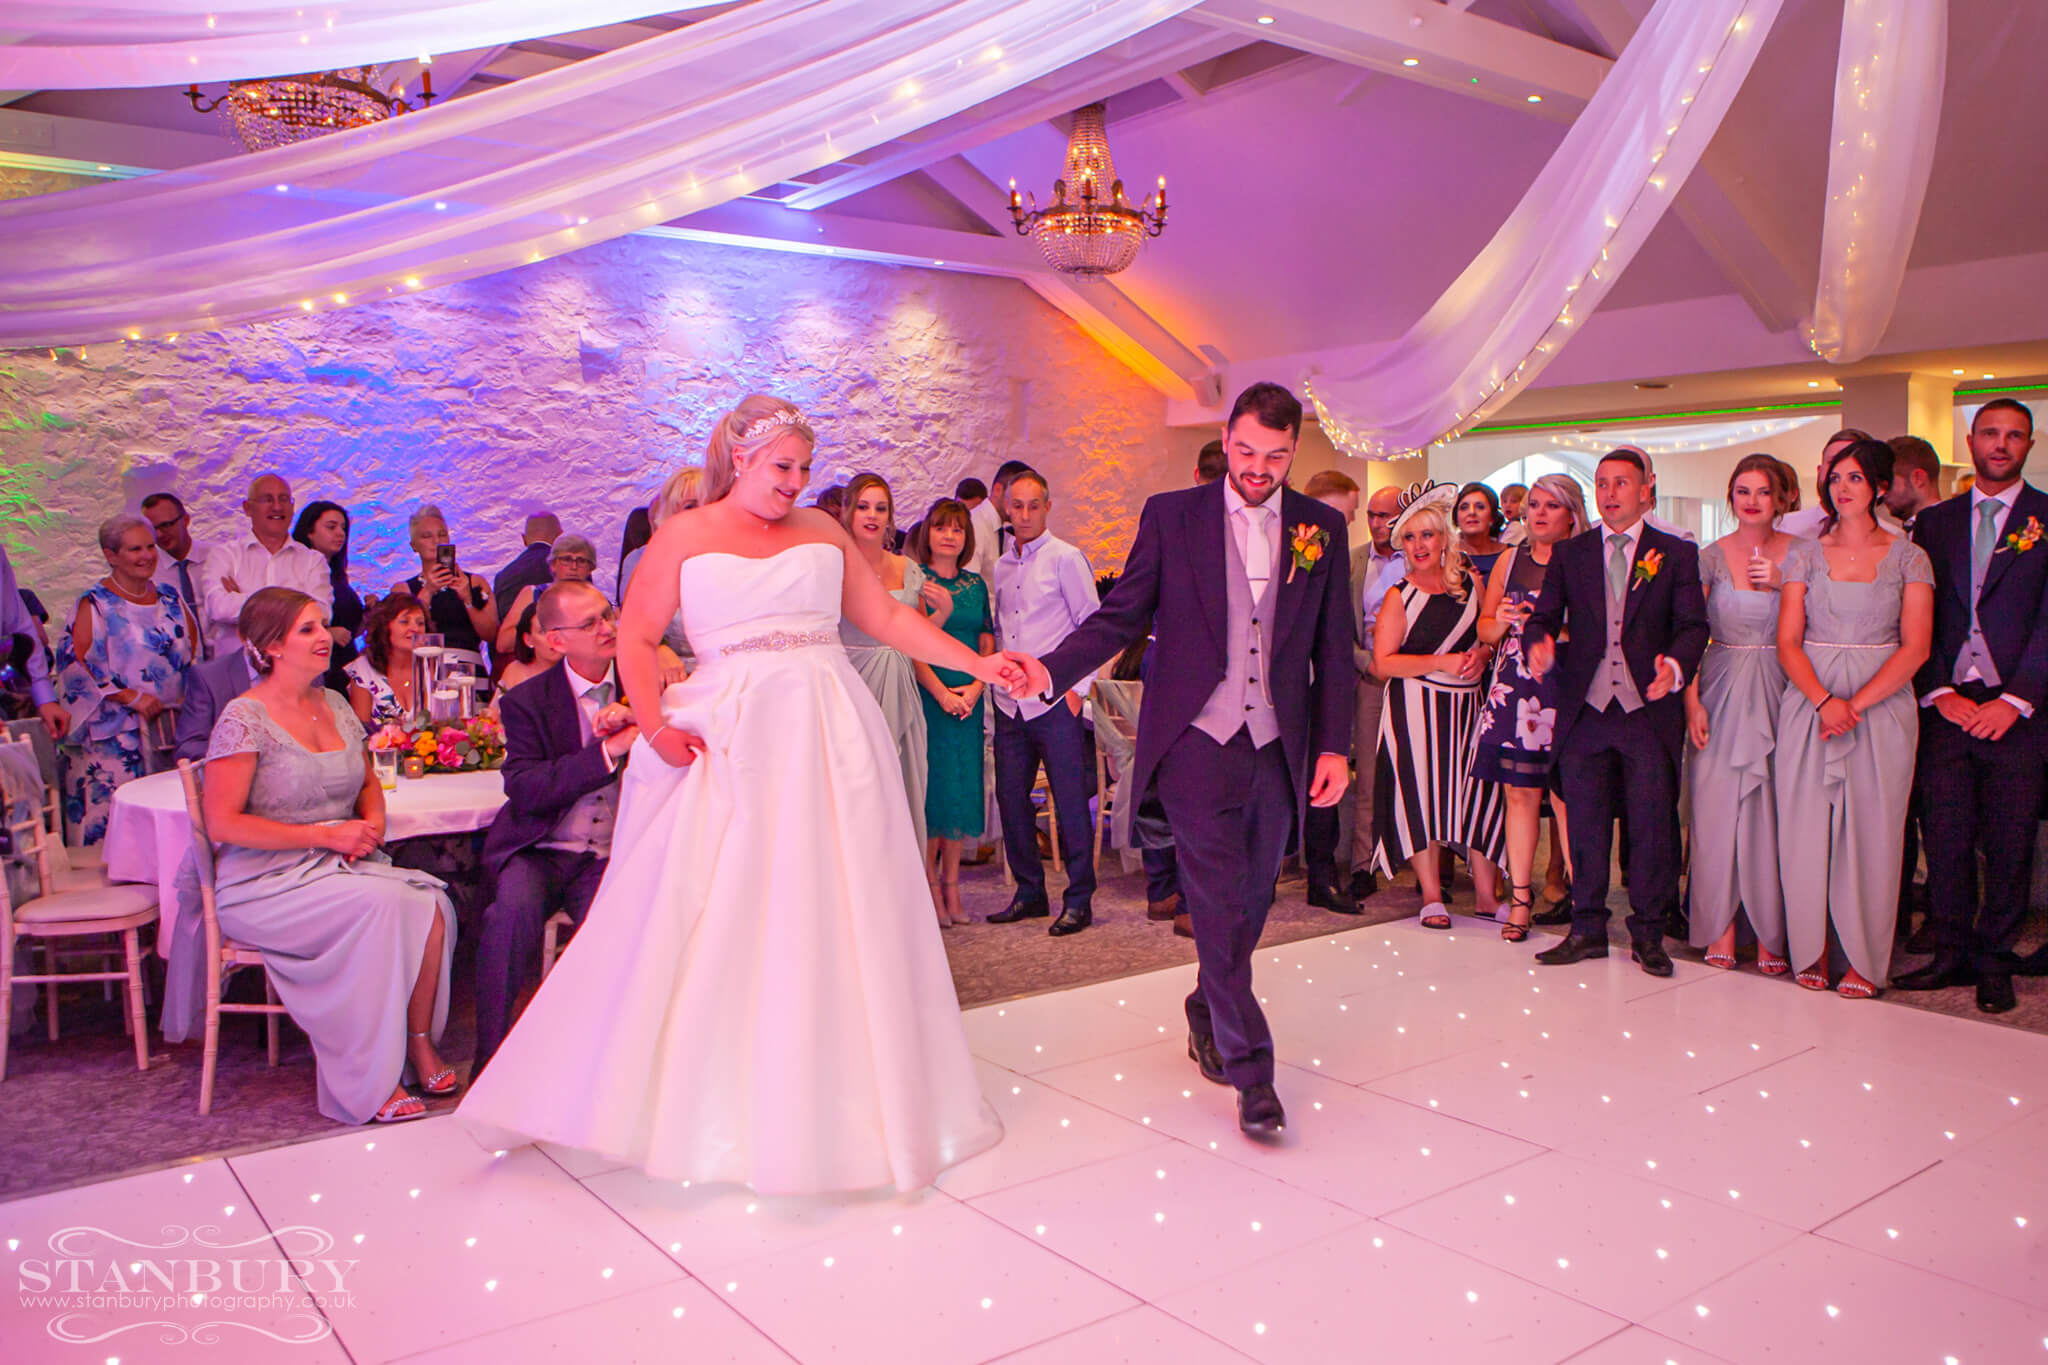 best-lancashire-wedding-photographers-stanbury-photography-035